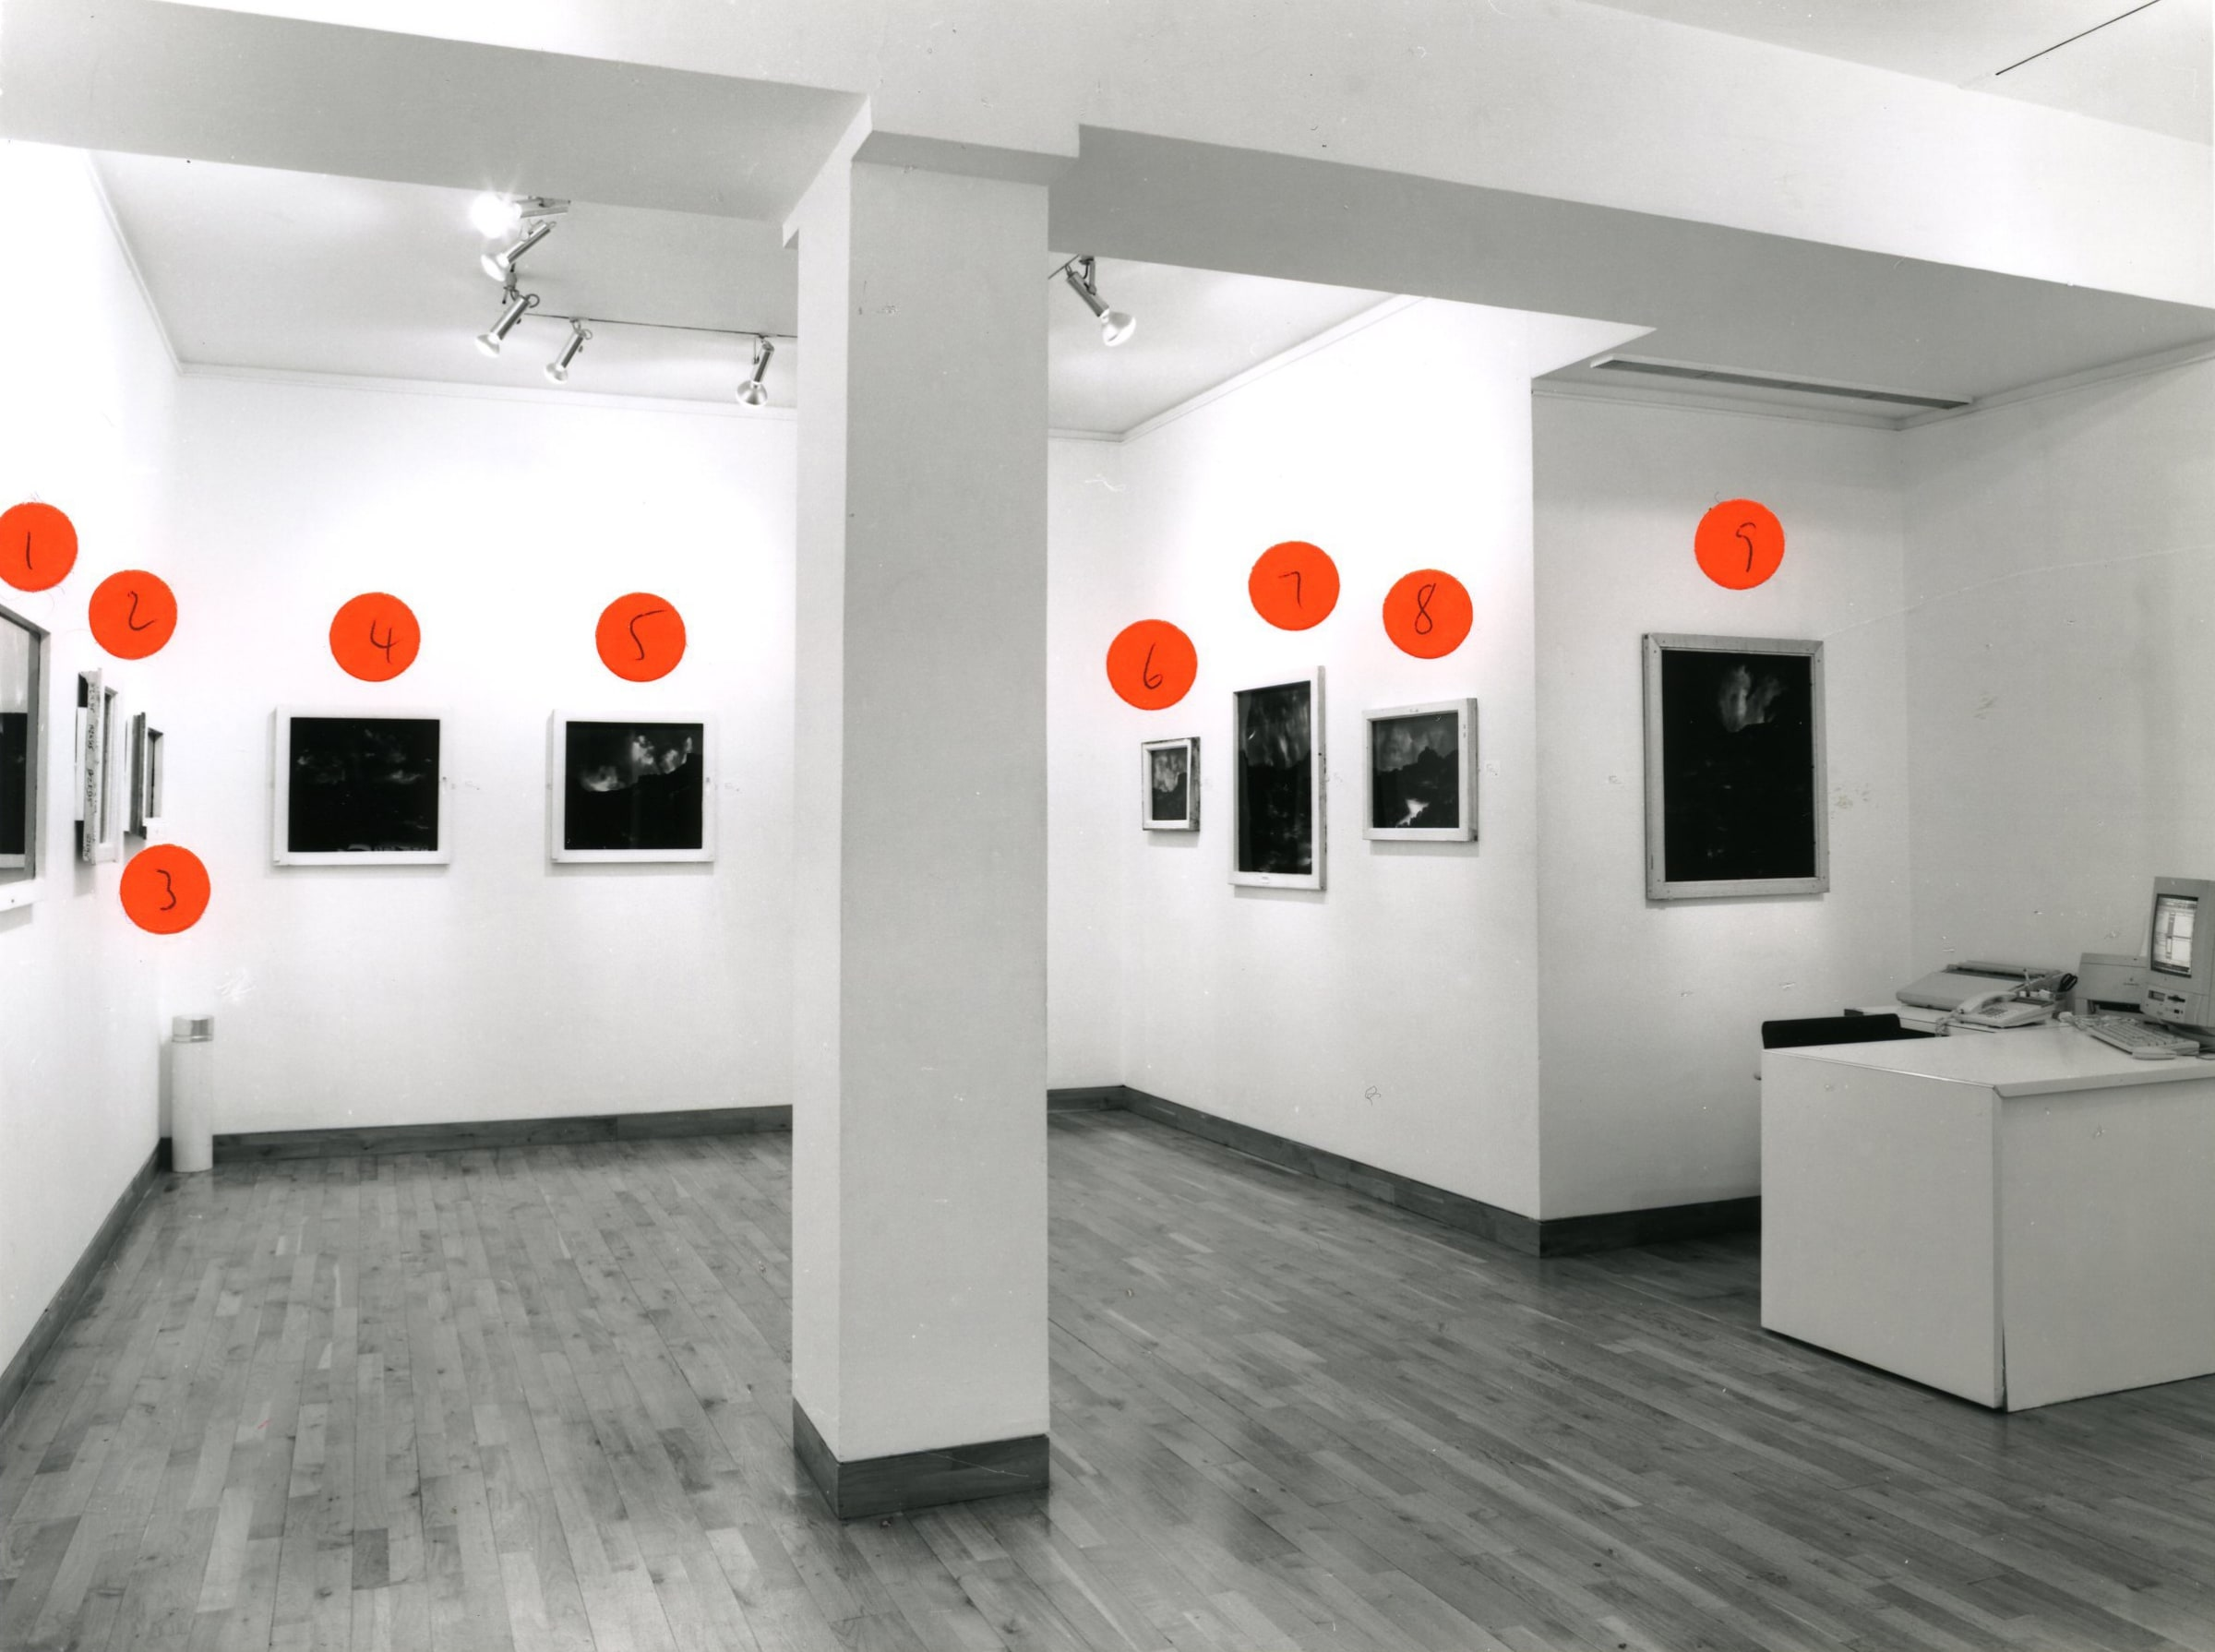 """<span class=""""link fancybox-details-link""""><a href=""""/exhibitions/173/works/image_standalone775/"""">View Detail Page</a></span><p>BEN KADISHMAN   PAINTINGS 1993 - 1998   29 JAN - 13 MAR 1998   Installation View</p>"""